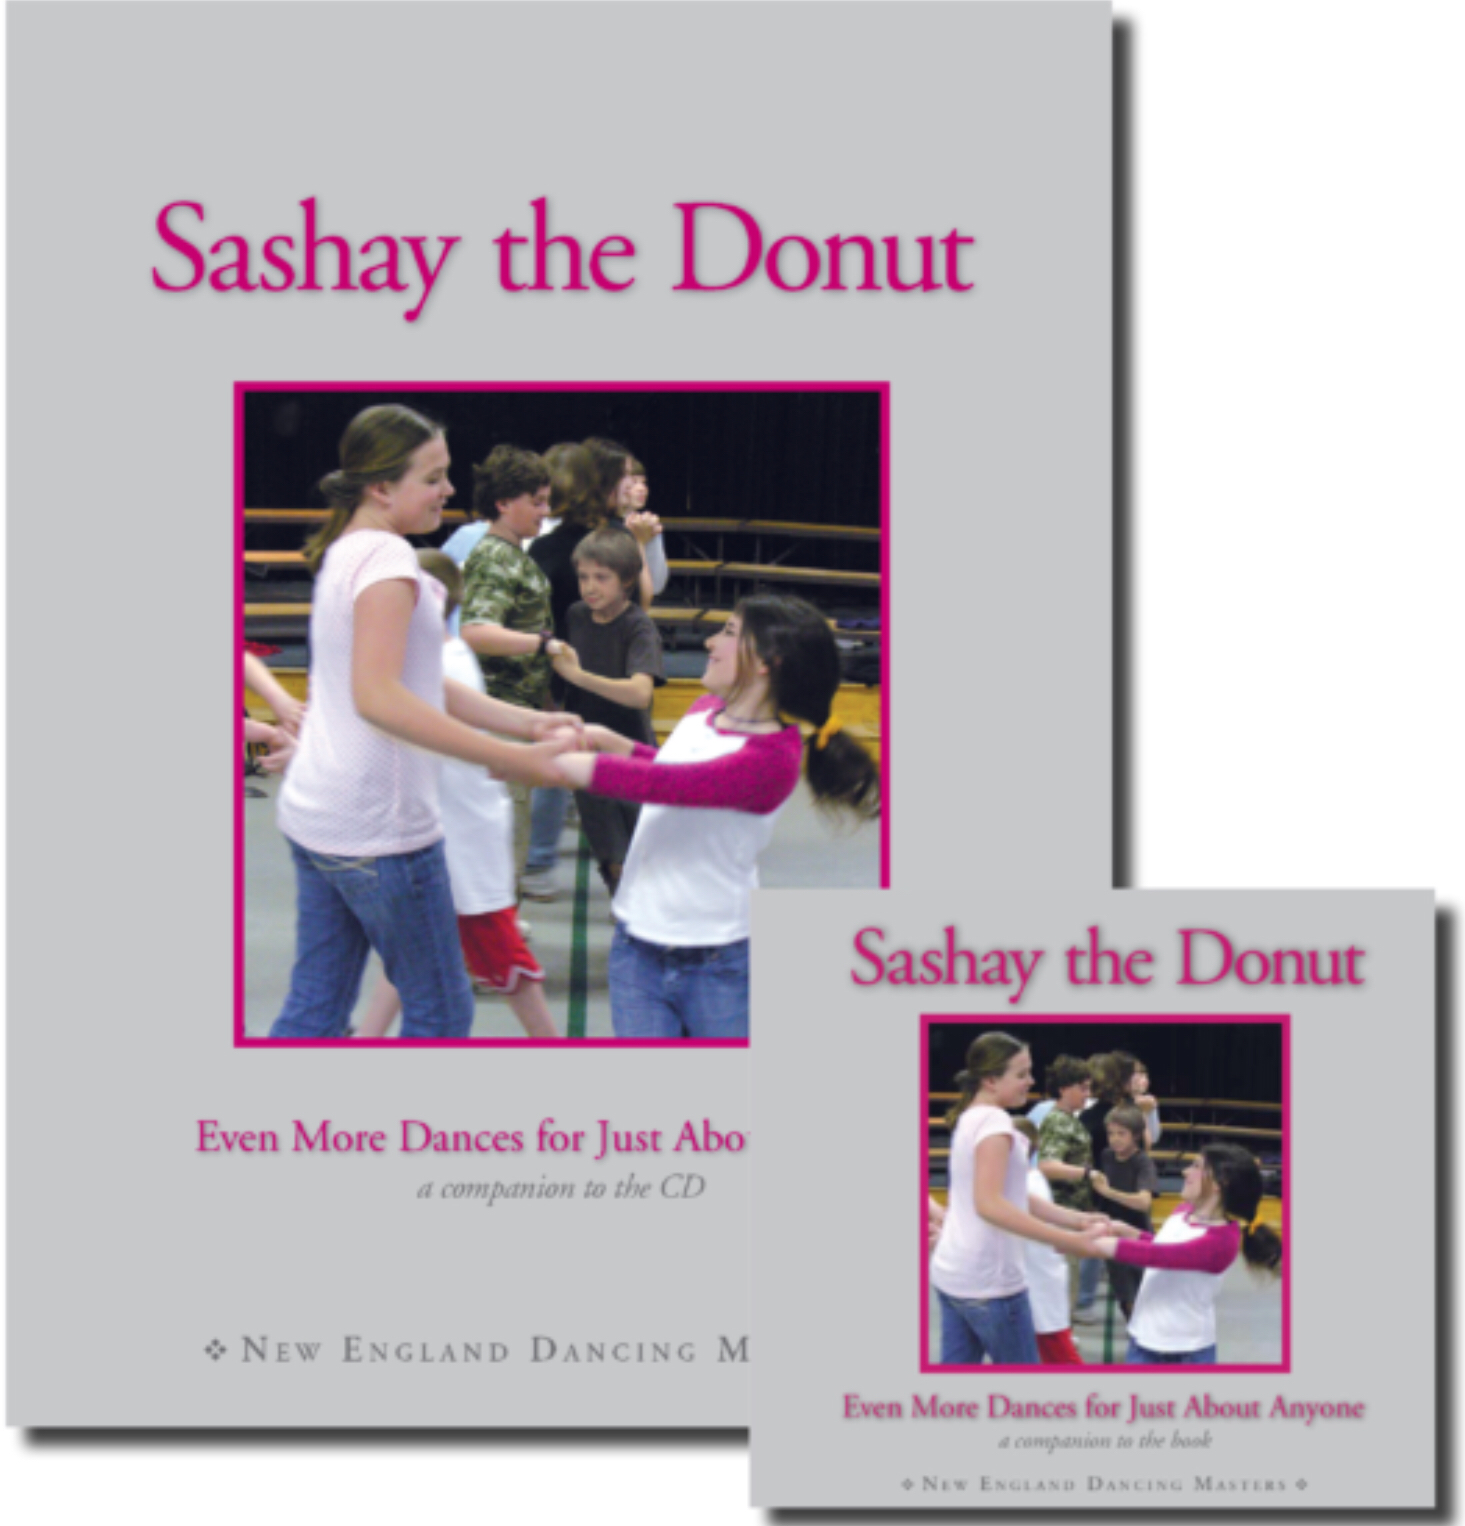 Sashay The Donut (book And Cd) by New England Dancing Masters